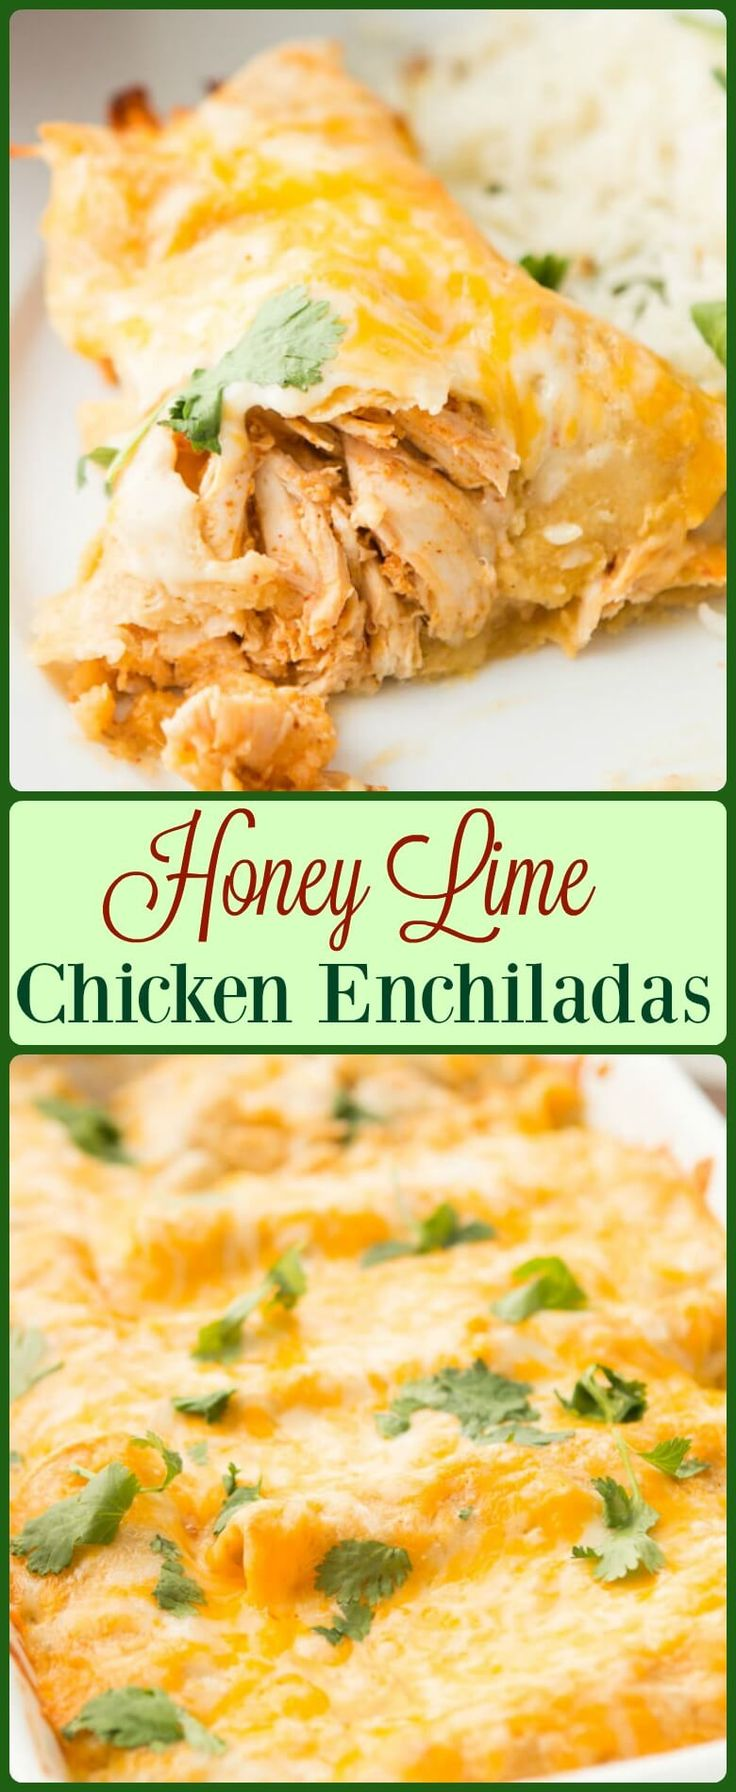 These Honey Lime Chicken Enchiladas have changed our view of Enchiladas forever. The marinated chicken and cheese are so good! ohsweetbasil.com via @ohsweetbasil